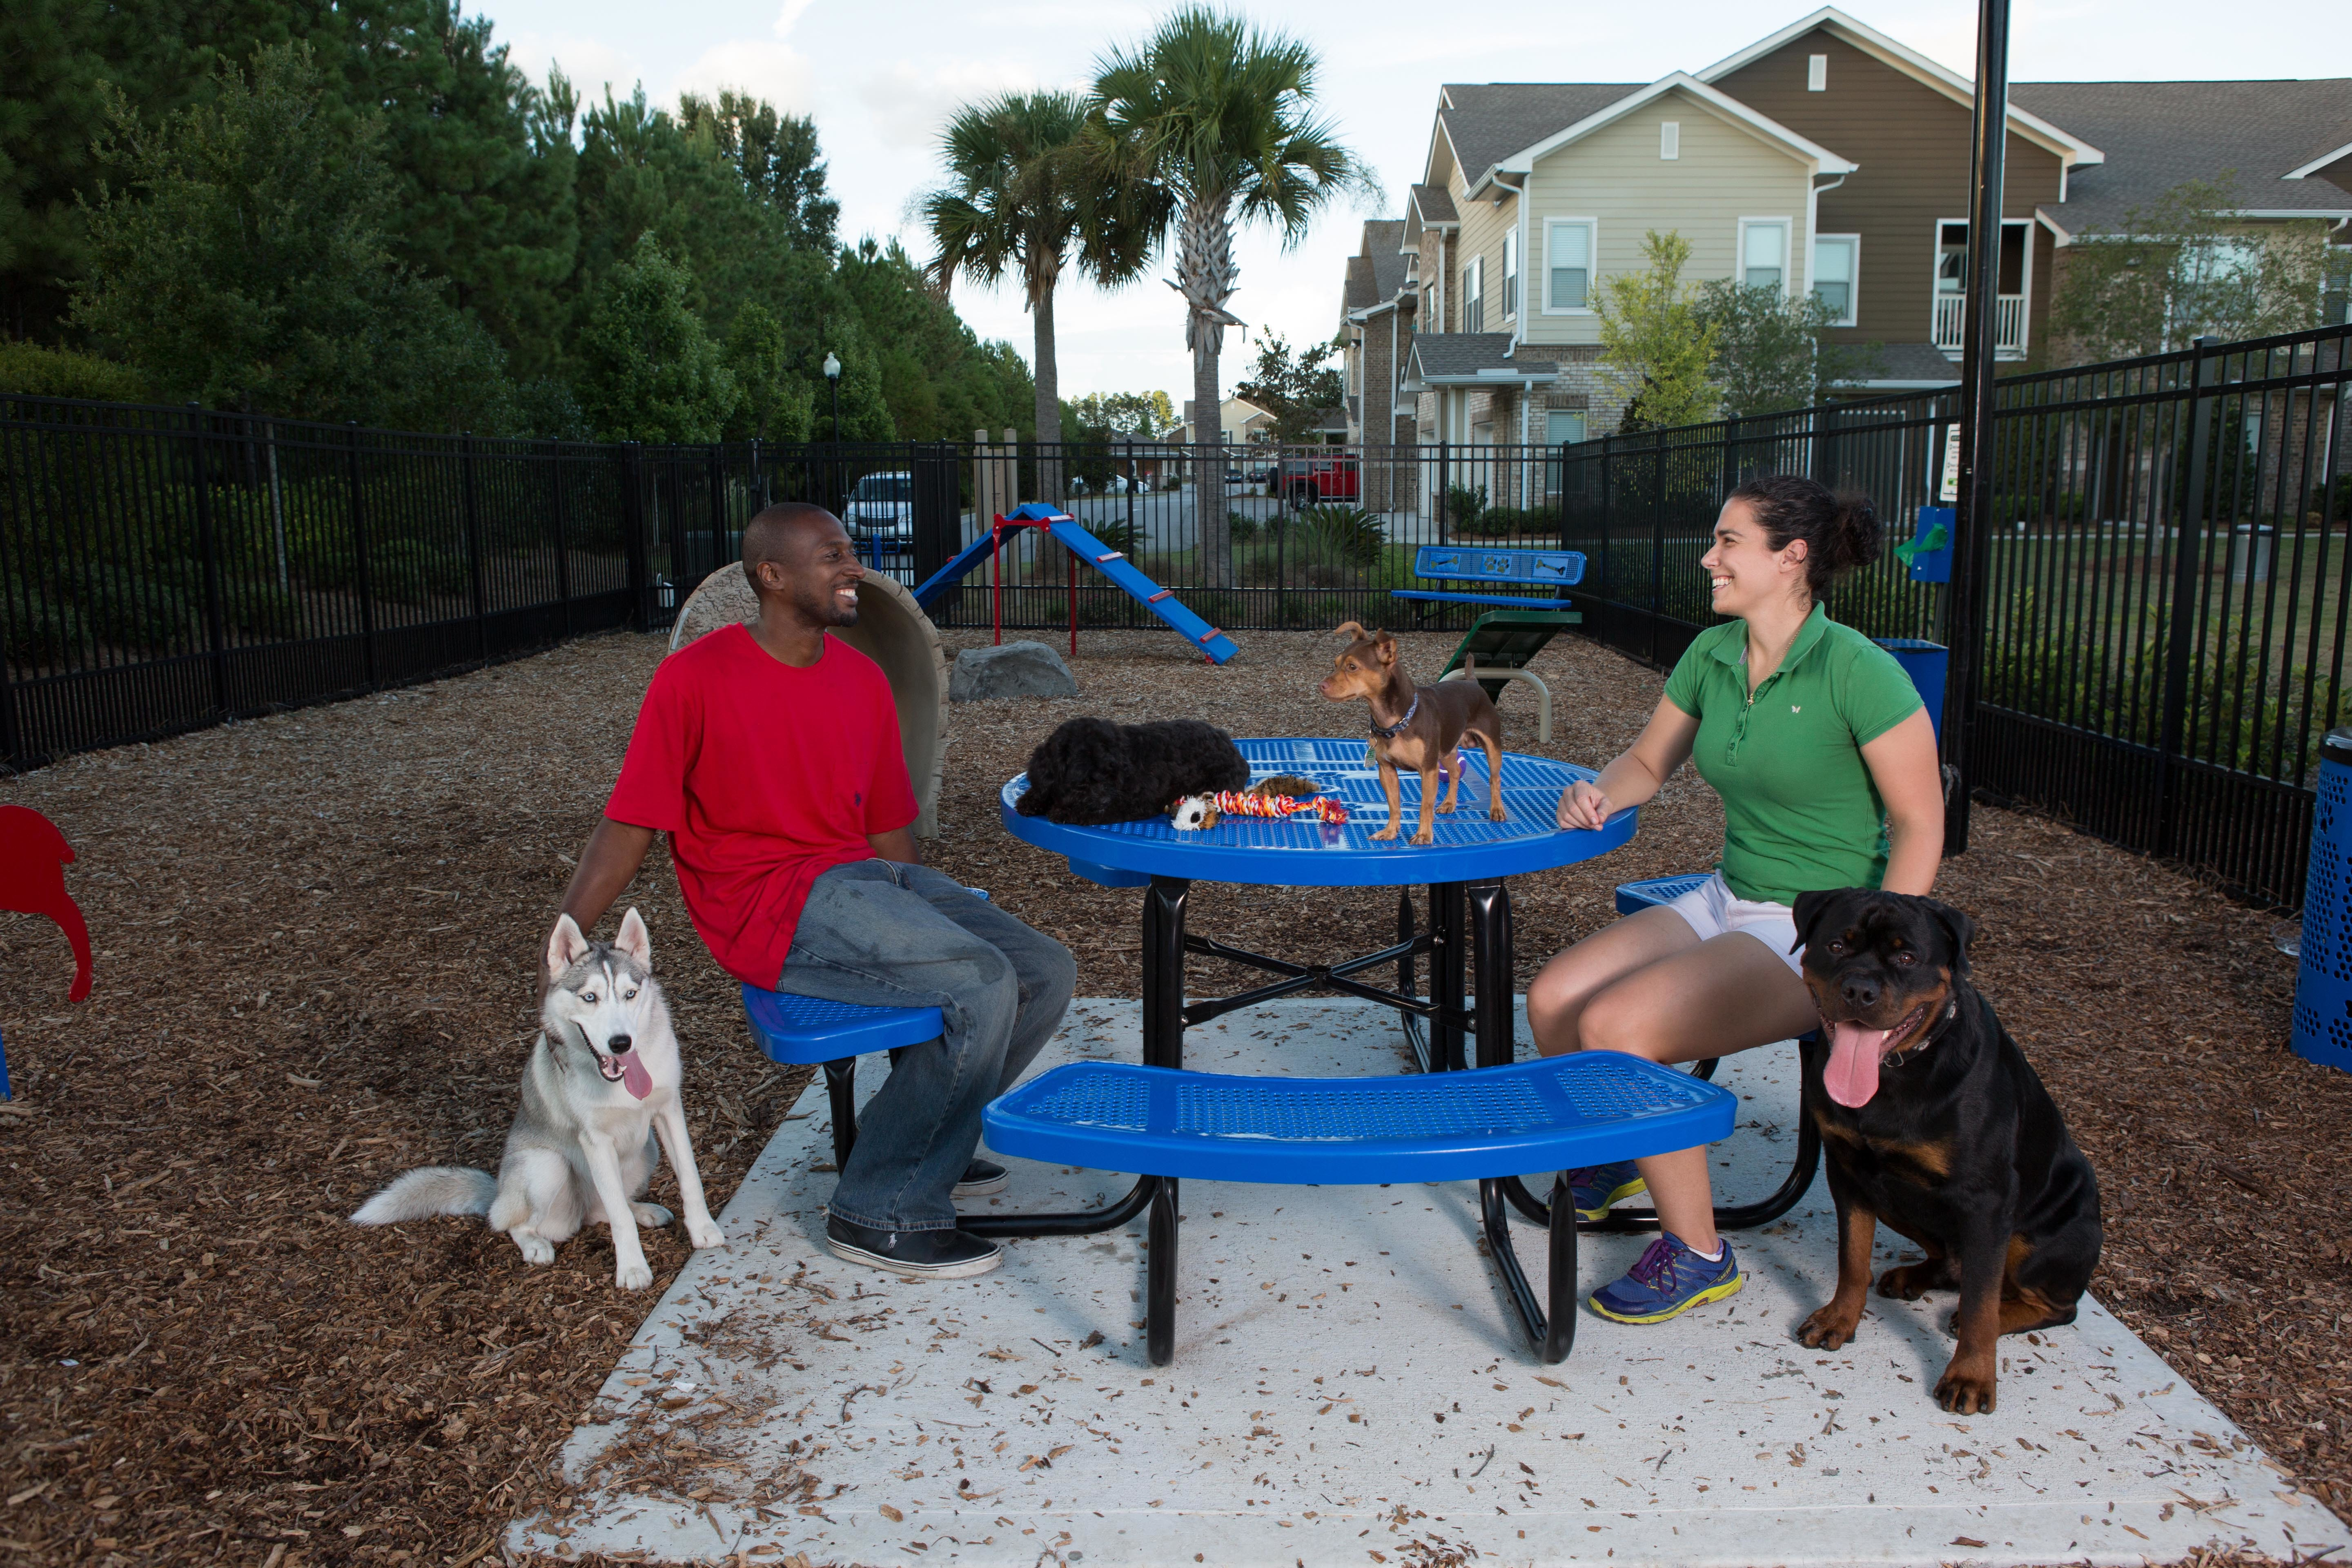 Blue Chow Hound Table with people sitting with their dogs.